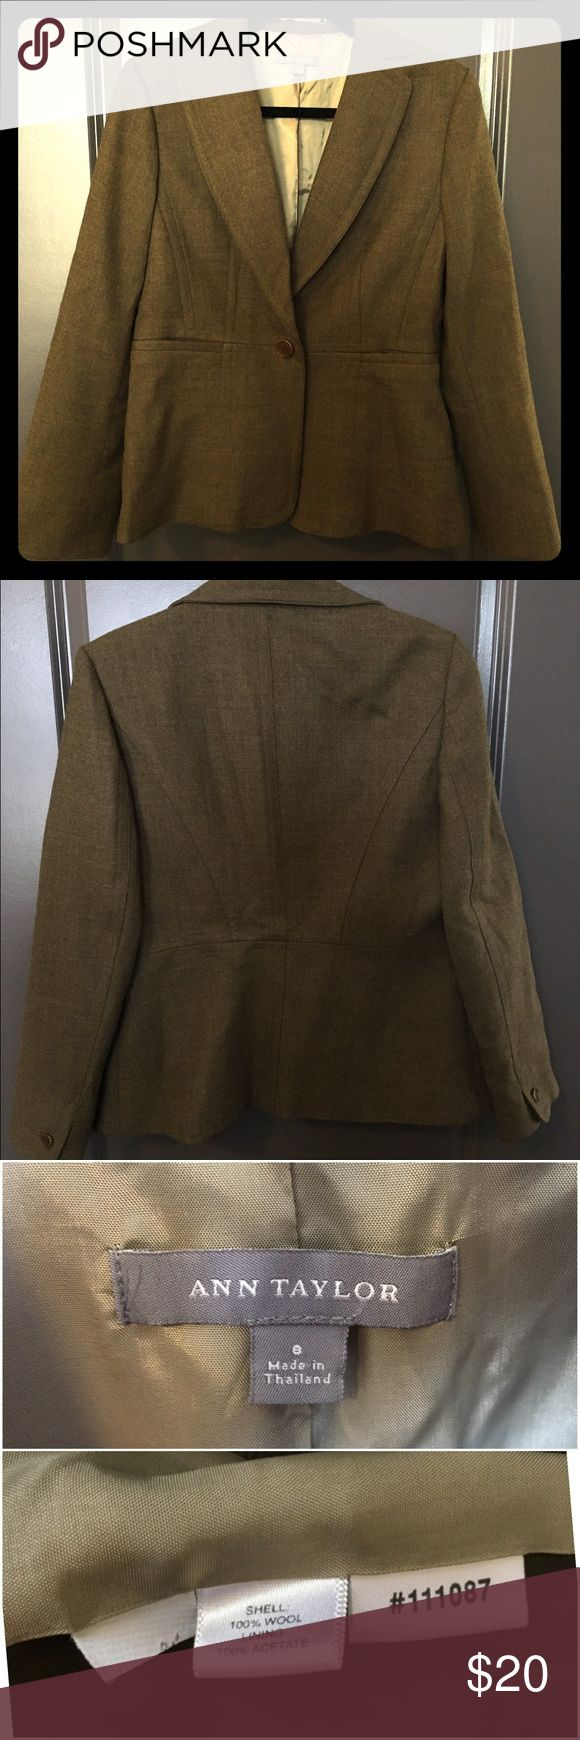 Ann Taylor Olive Green Blazer / Jacket 100% Wool Ann Taylor Blazer size 8 in olive green color. Great to wear for work or to pair with jeans and boots for a casual look. Great condition! Ann Taylor Jackets & Coats Blazers